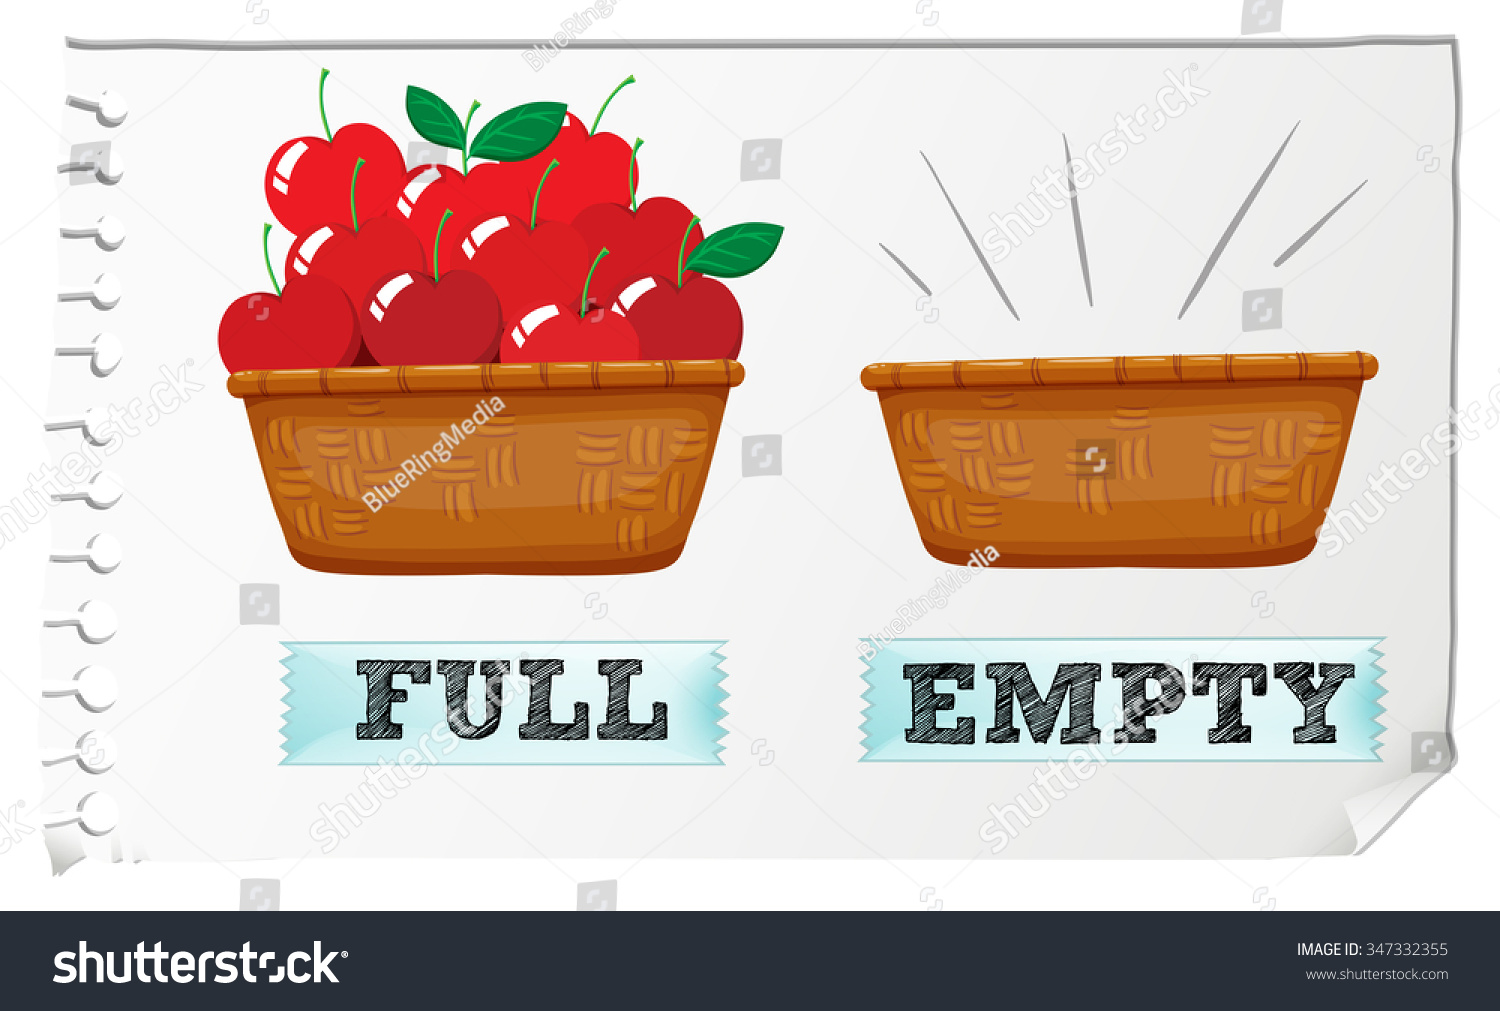 Worksheet Full And Empty opposite adjective full and empty illustration 347332355 preview save to a lightbox